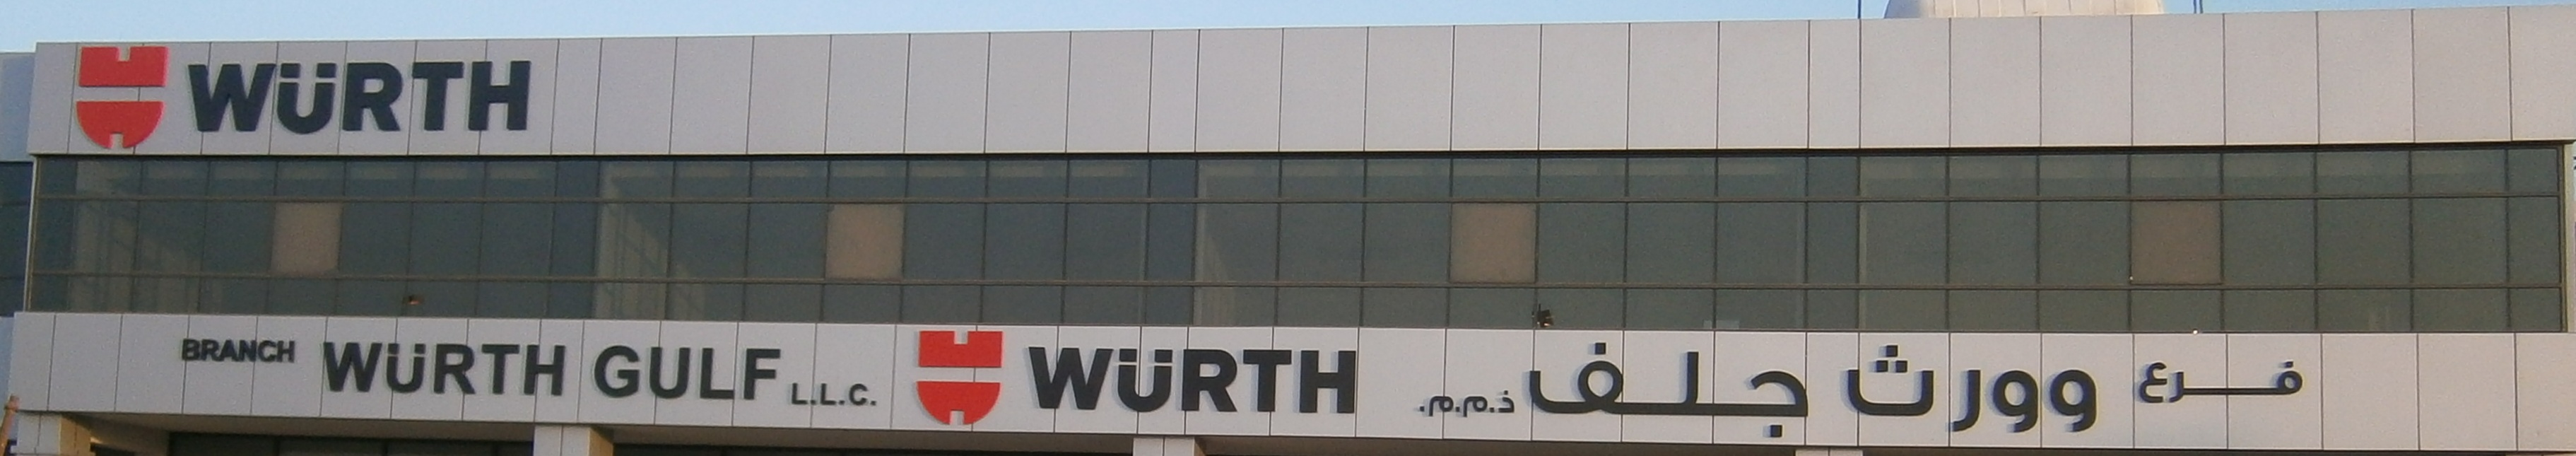 <h2>WURTH - External Sign</h2><br/>